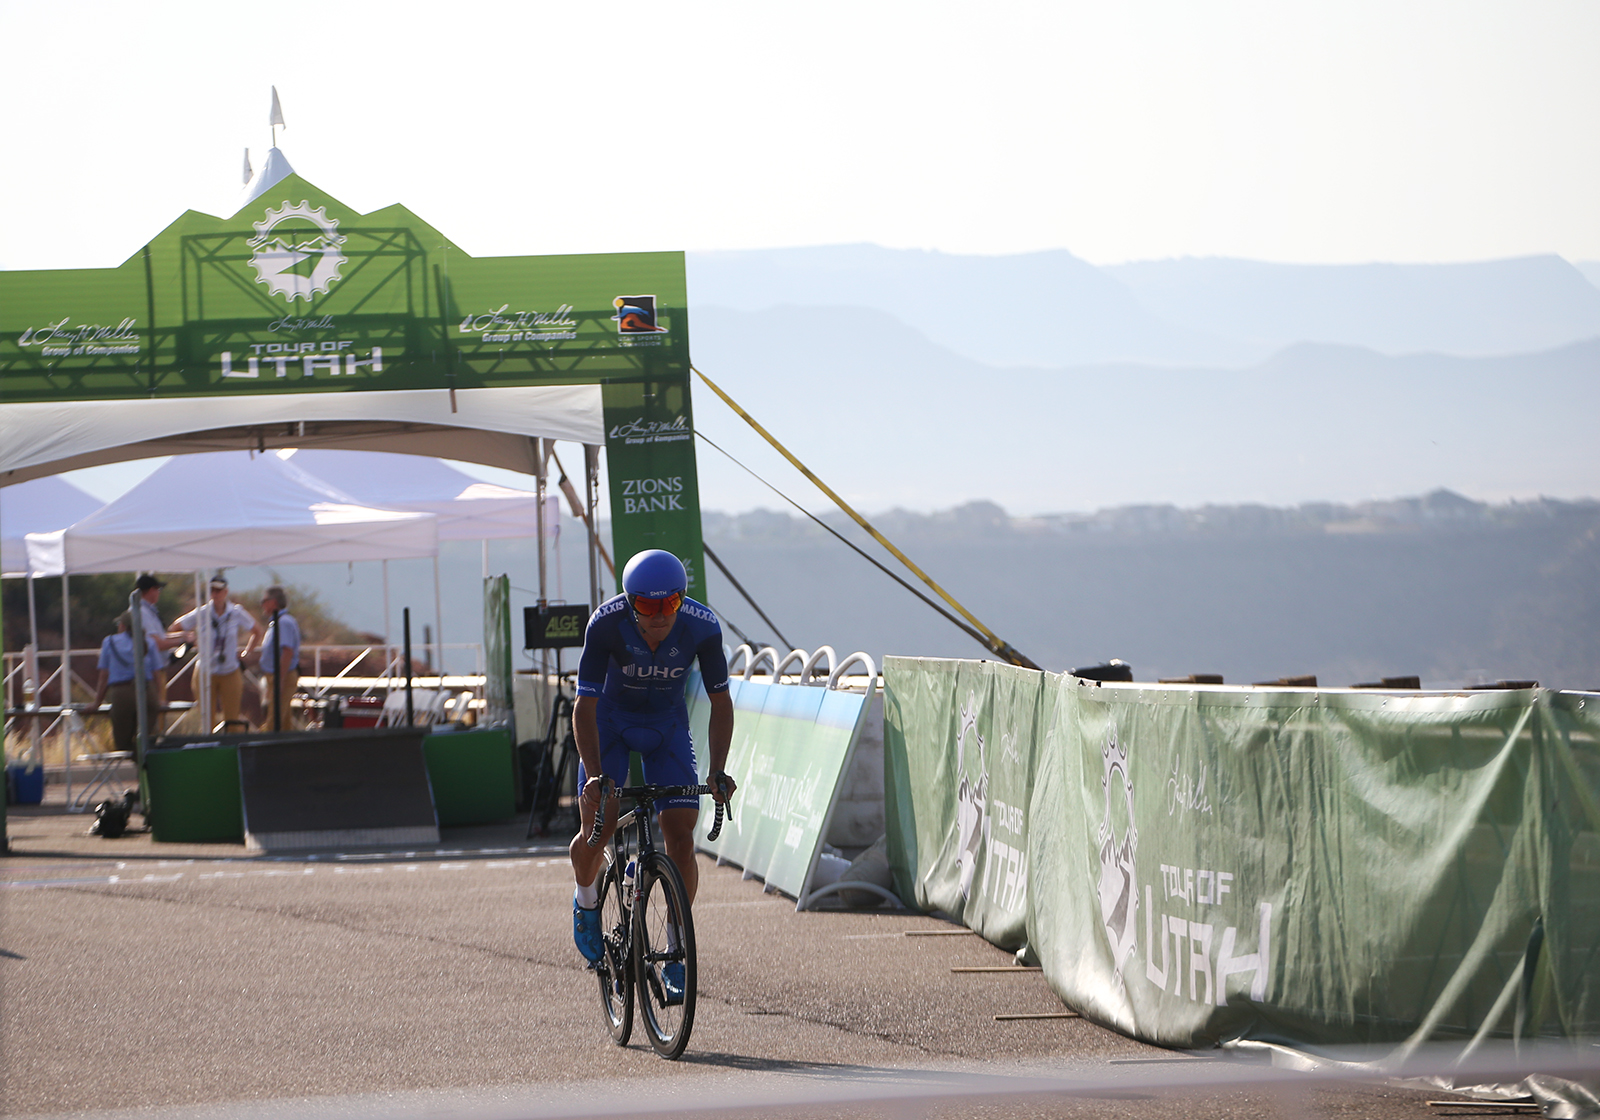 A UHC rider.  2018 Tour of Utah Team Prologue, August 6, 2018, St. George, Utah. Photo by Cathy Fegan-Kim, cottonsoxphotography.net